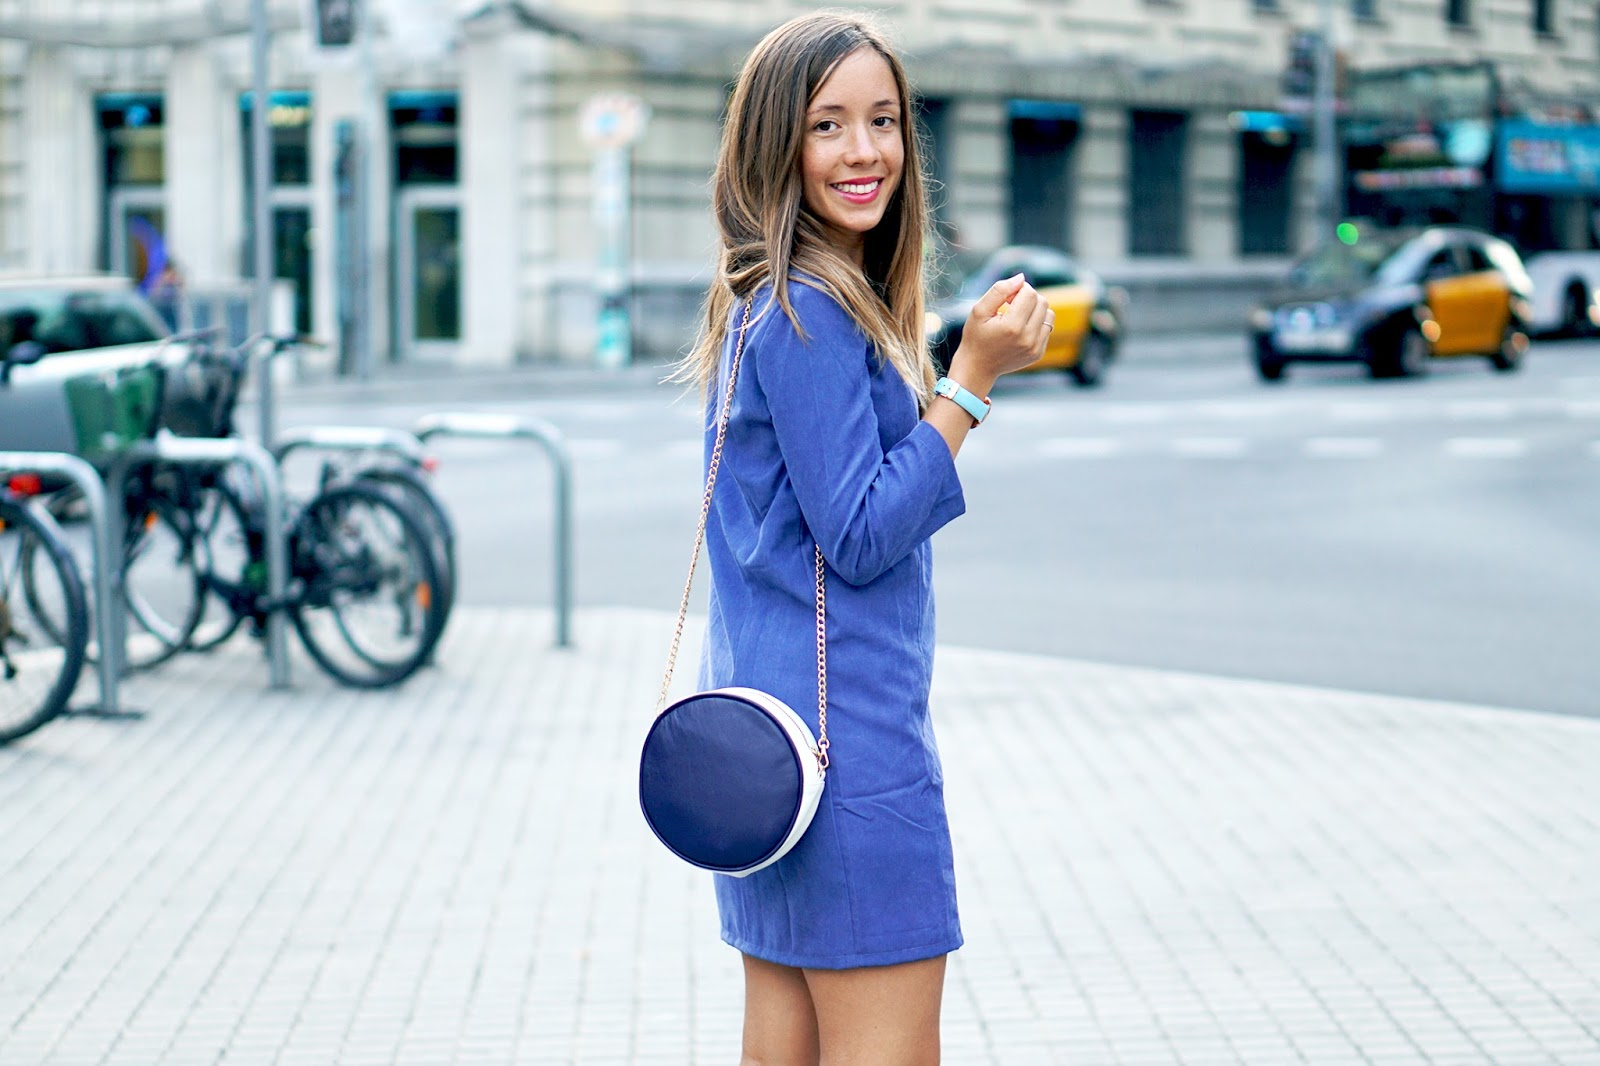 Tenue monochrome bleu